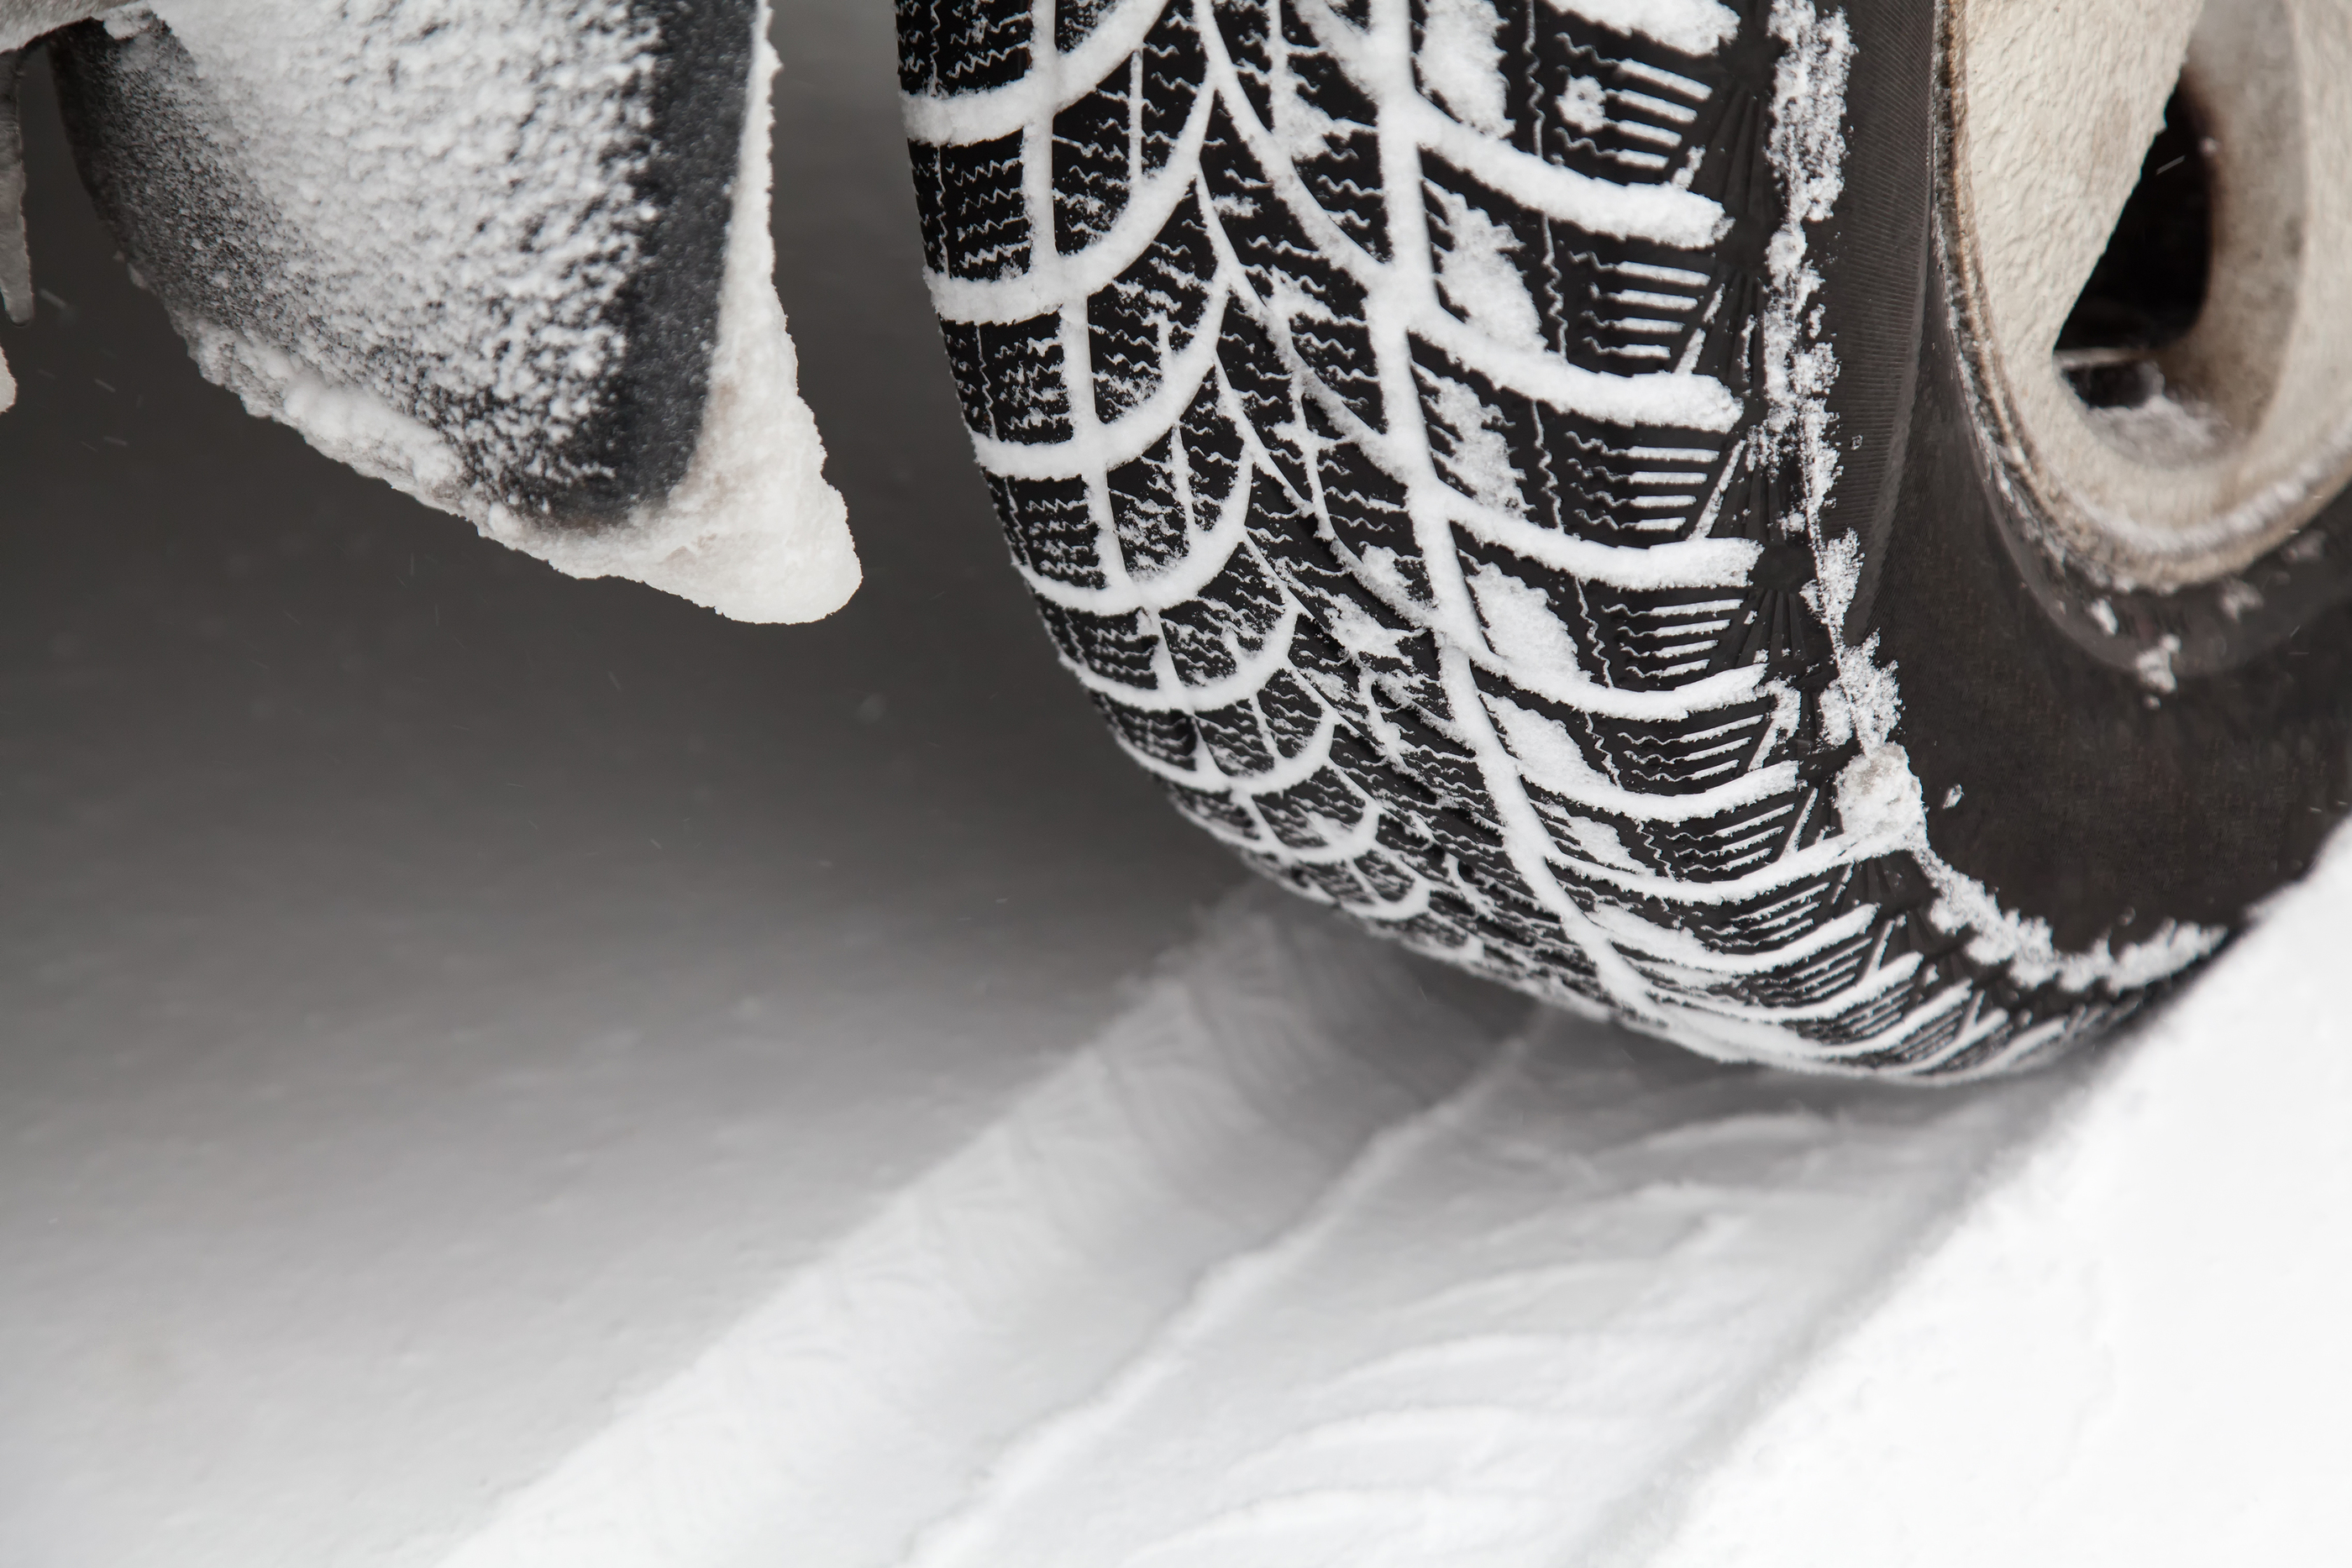 Winter Tyres on Snow